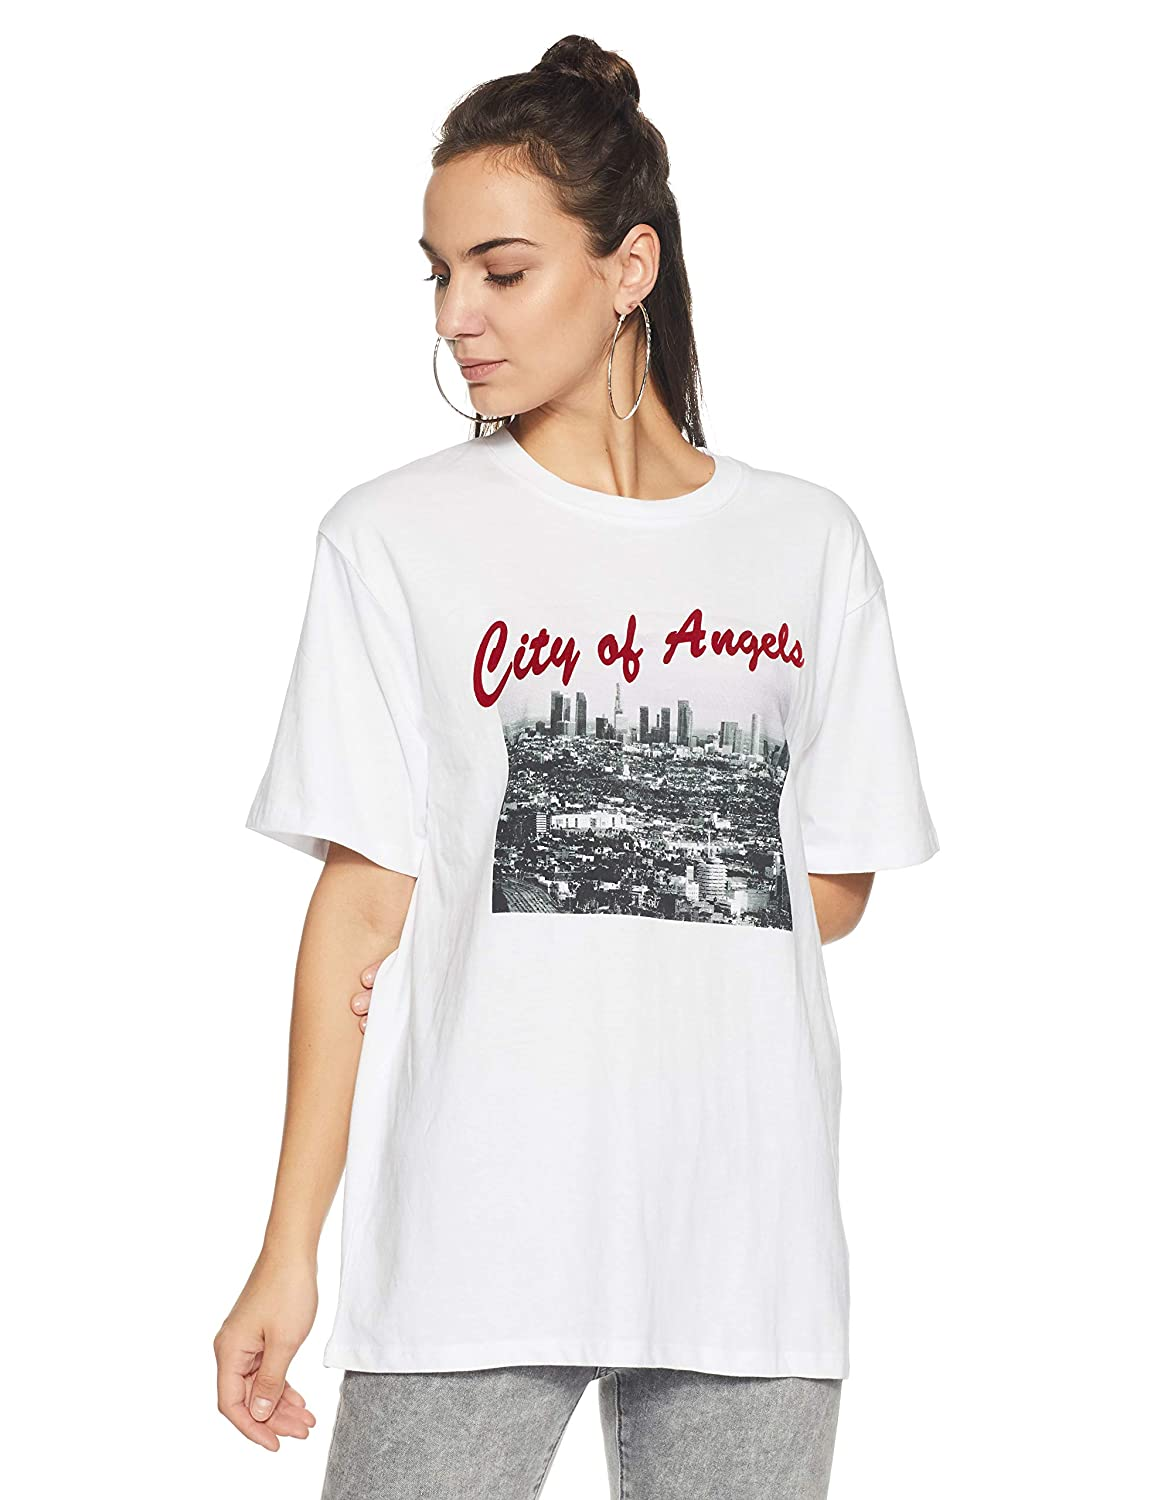 244526c8 Forever 21 Women's City of Angels Graphic Tee Logo 190057, Medium,  White/Black: Amazon.in: Clothing & Accessories